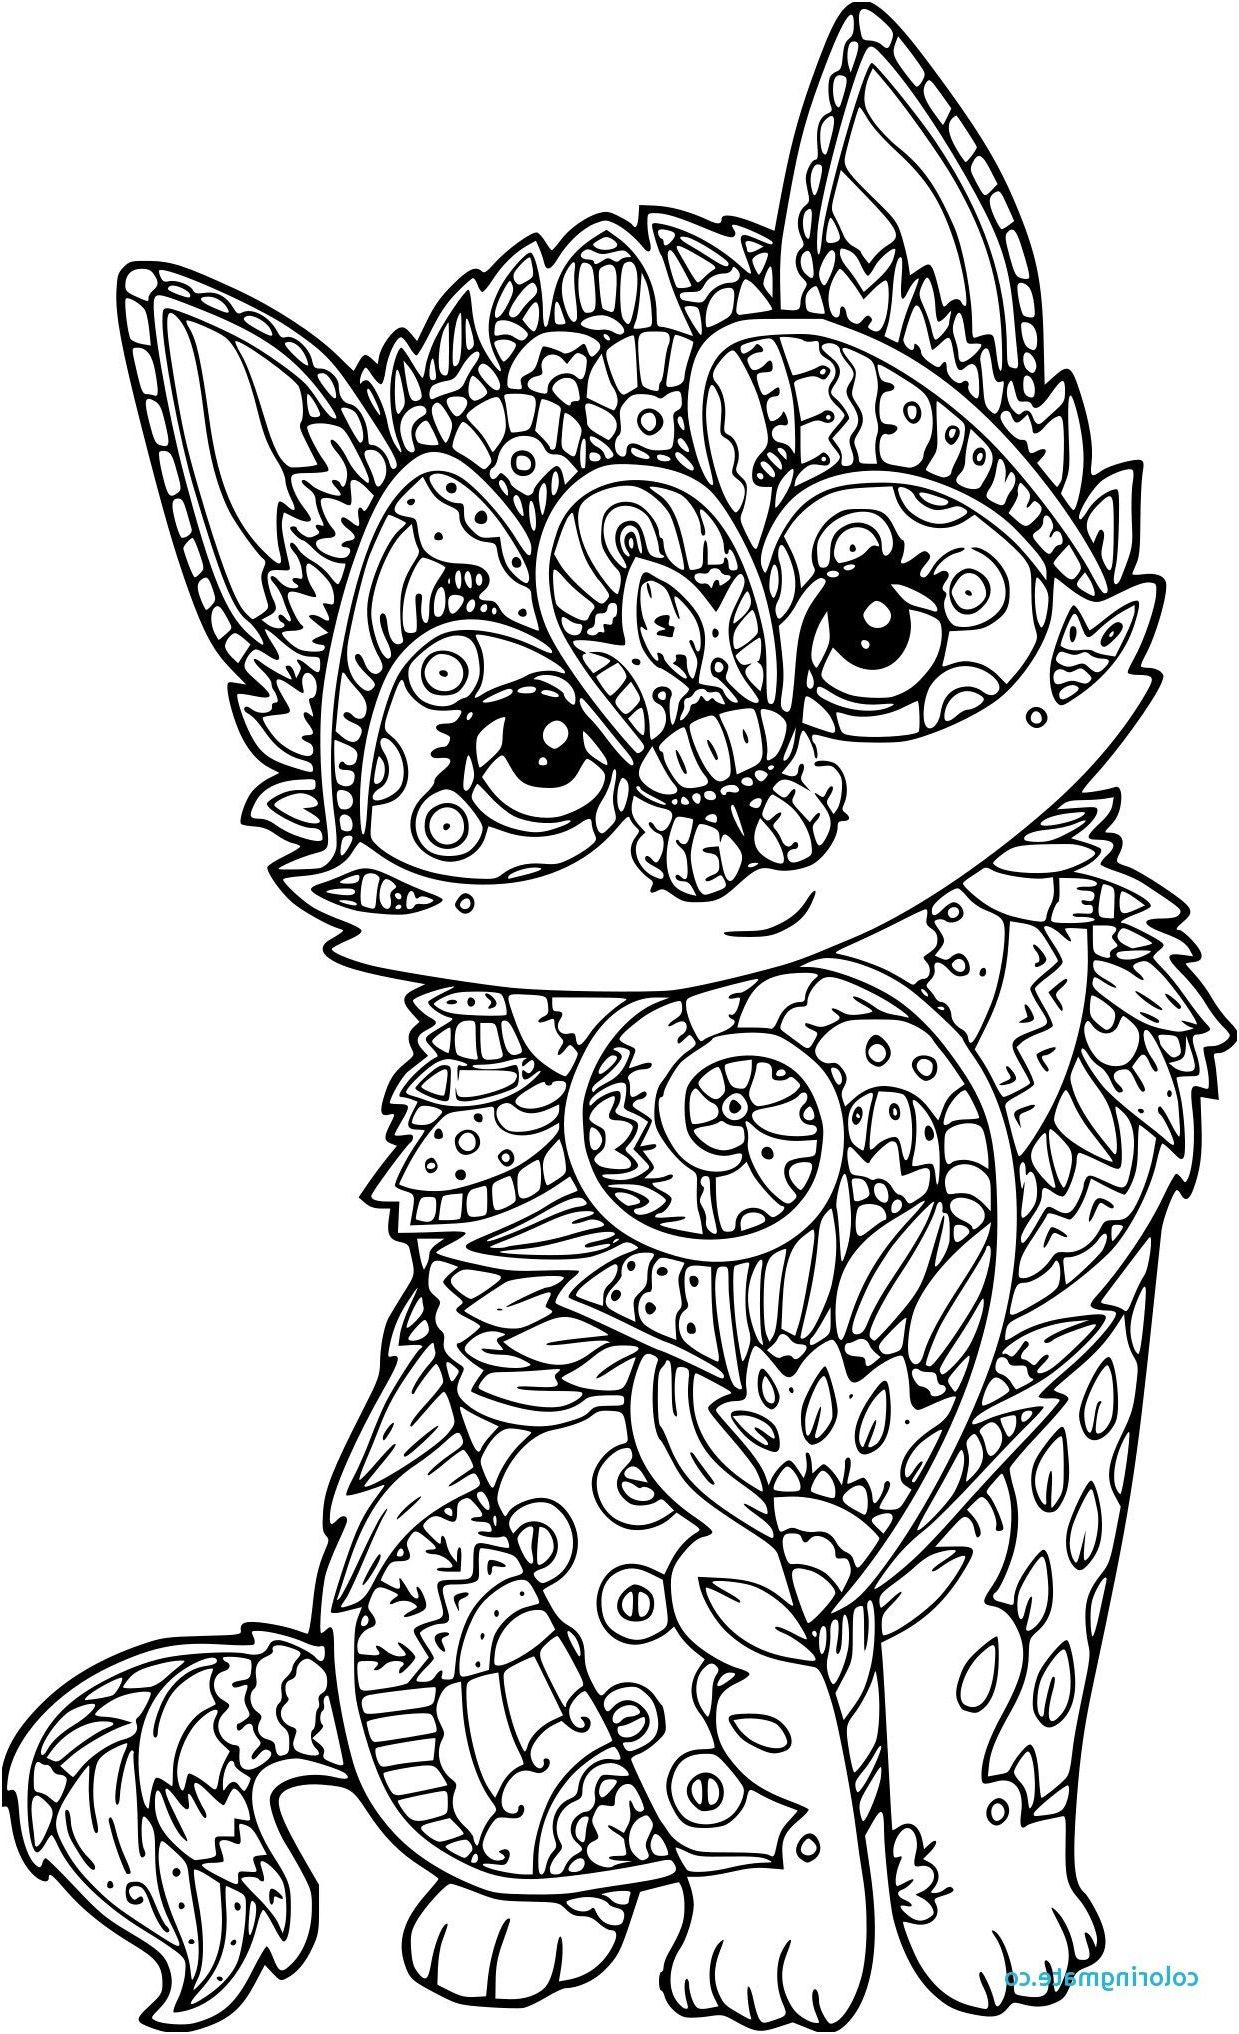 9 Piece Preferee Coloriage Mandalas Photos Coloriage Chat Coloriage Mandala Animaux Coloriage Mandala